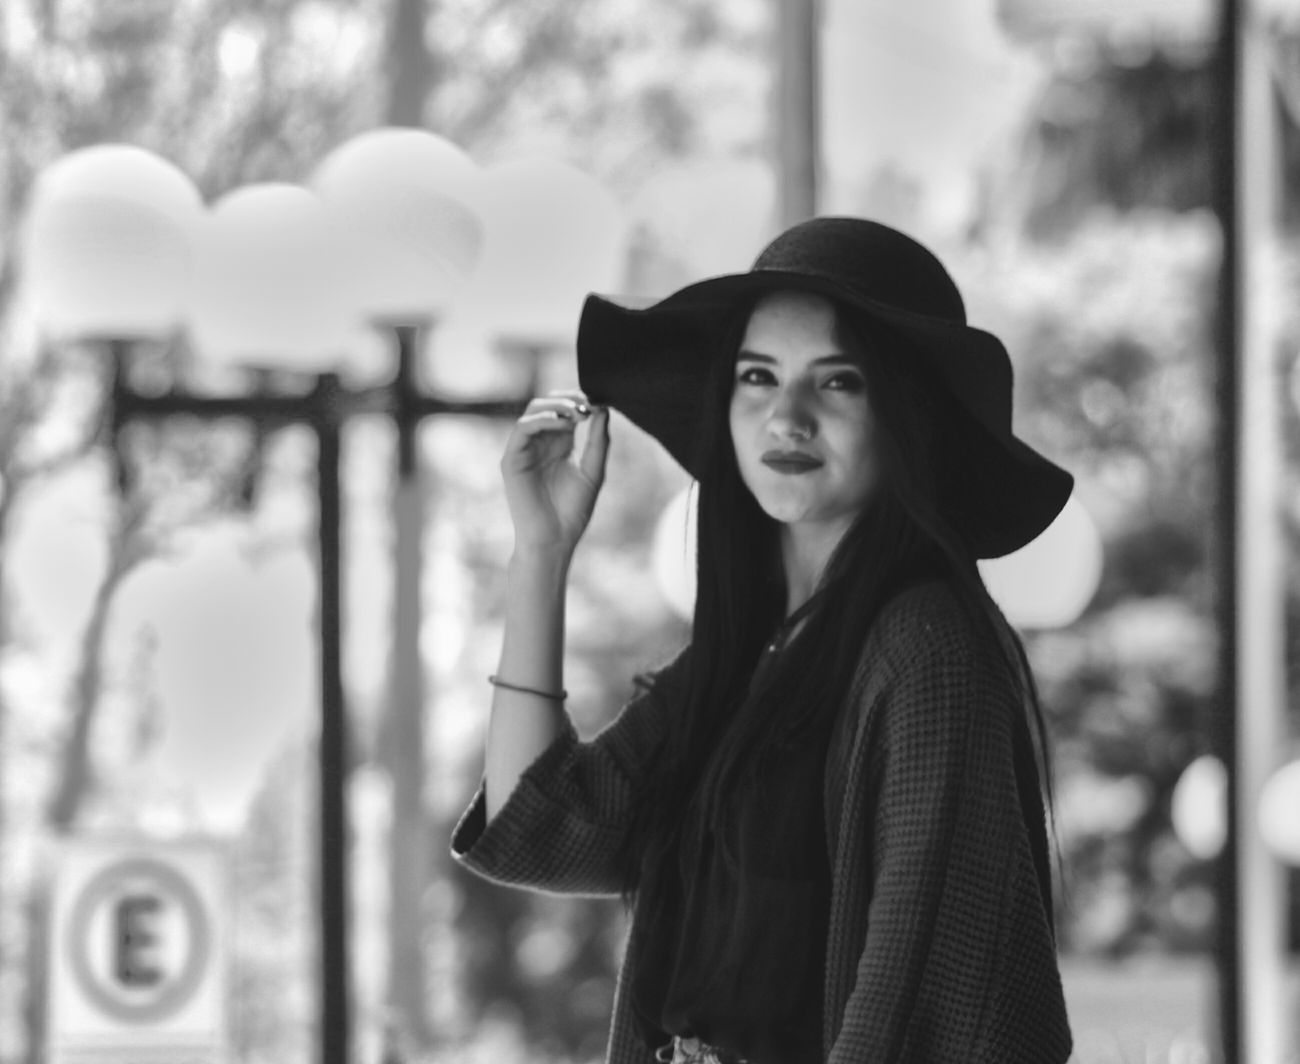 Monochrome First Eyeem Photo Blacl And White Taking Photos The Great Outdoors - 2016 EyeEm Awards Portrait Portrait Of A Woman Sad Backgrounds Vintage Vintage Photo Hipster Grunge Streetphotography Grungegirl Girl